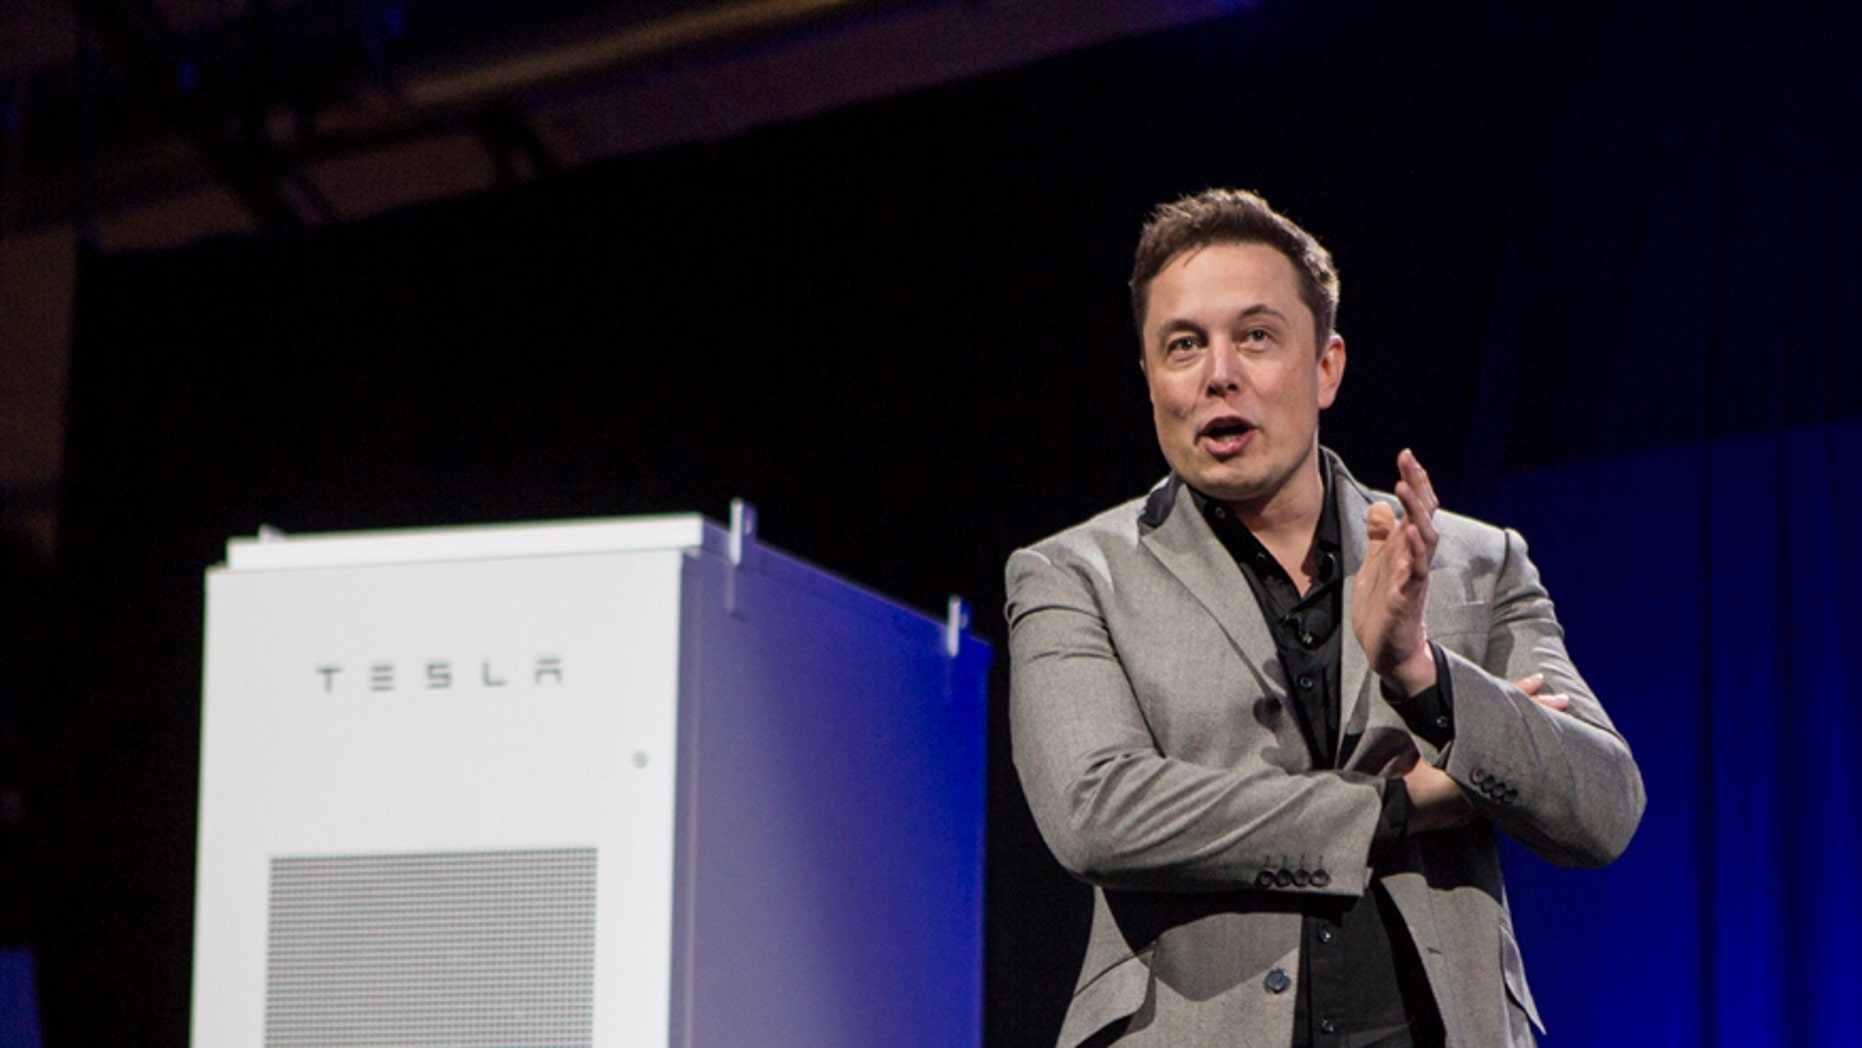 Elon Musk, CEO of Tesla Motors Inc., unveils the company's newest product, Powerpack in Hawthorne, Calif., Thursday, April. 30, 2015.